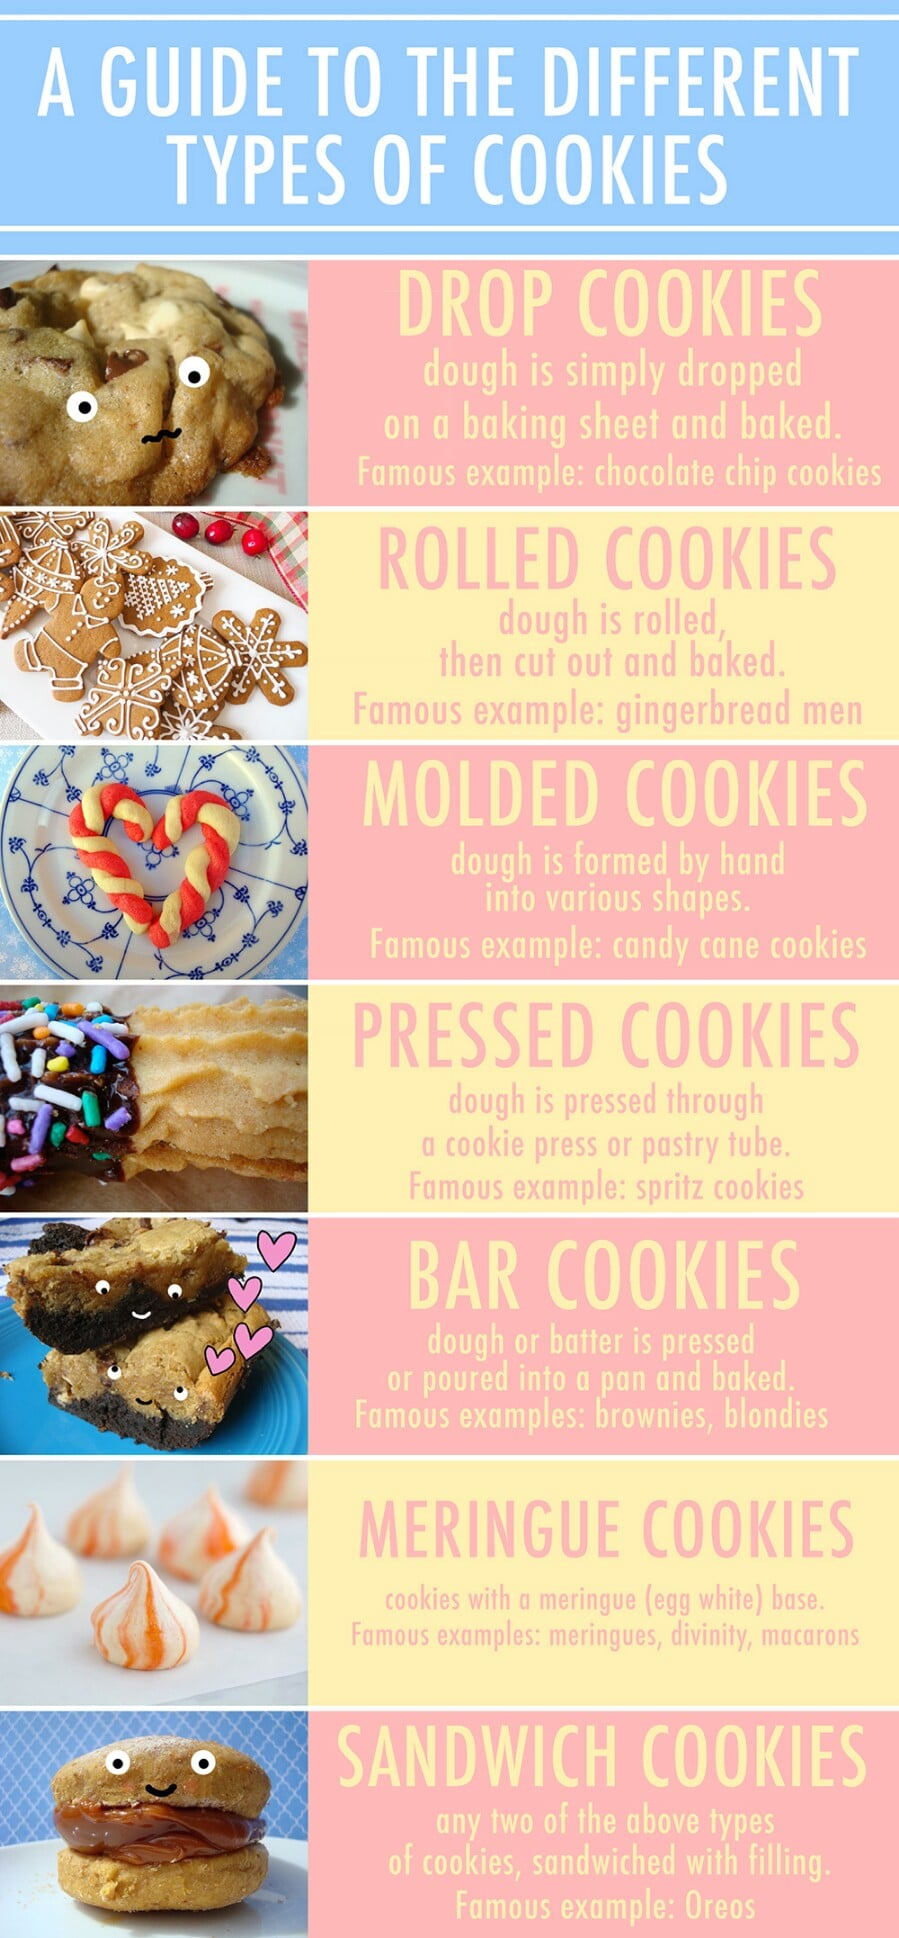 14. Check out a field guide to cookie taxonomy.